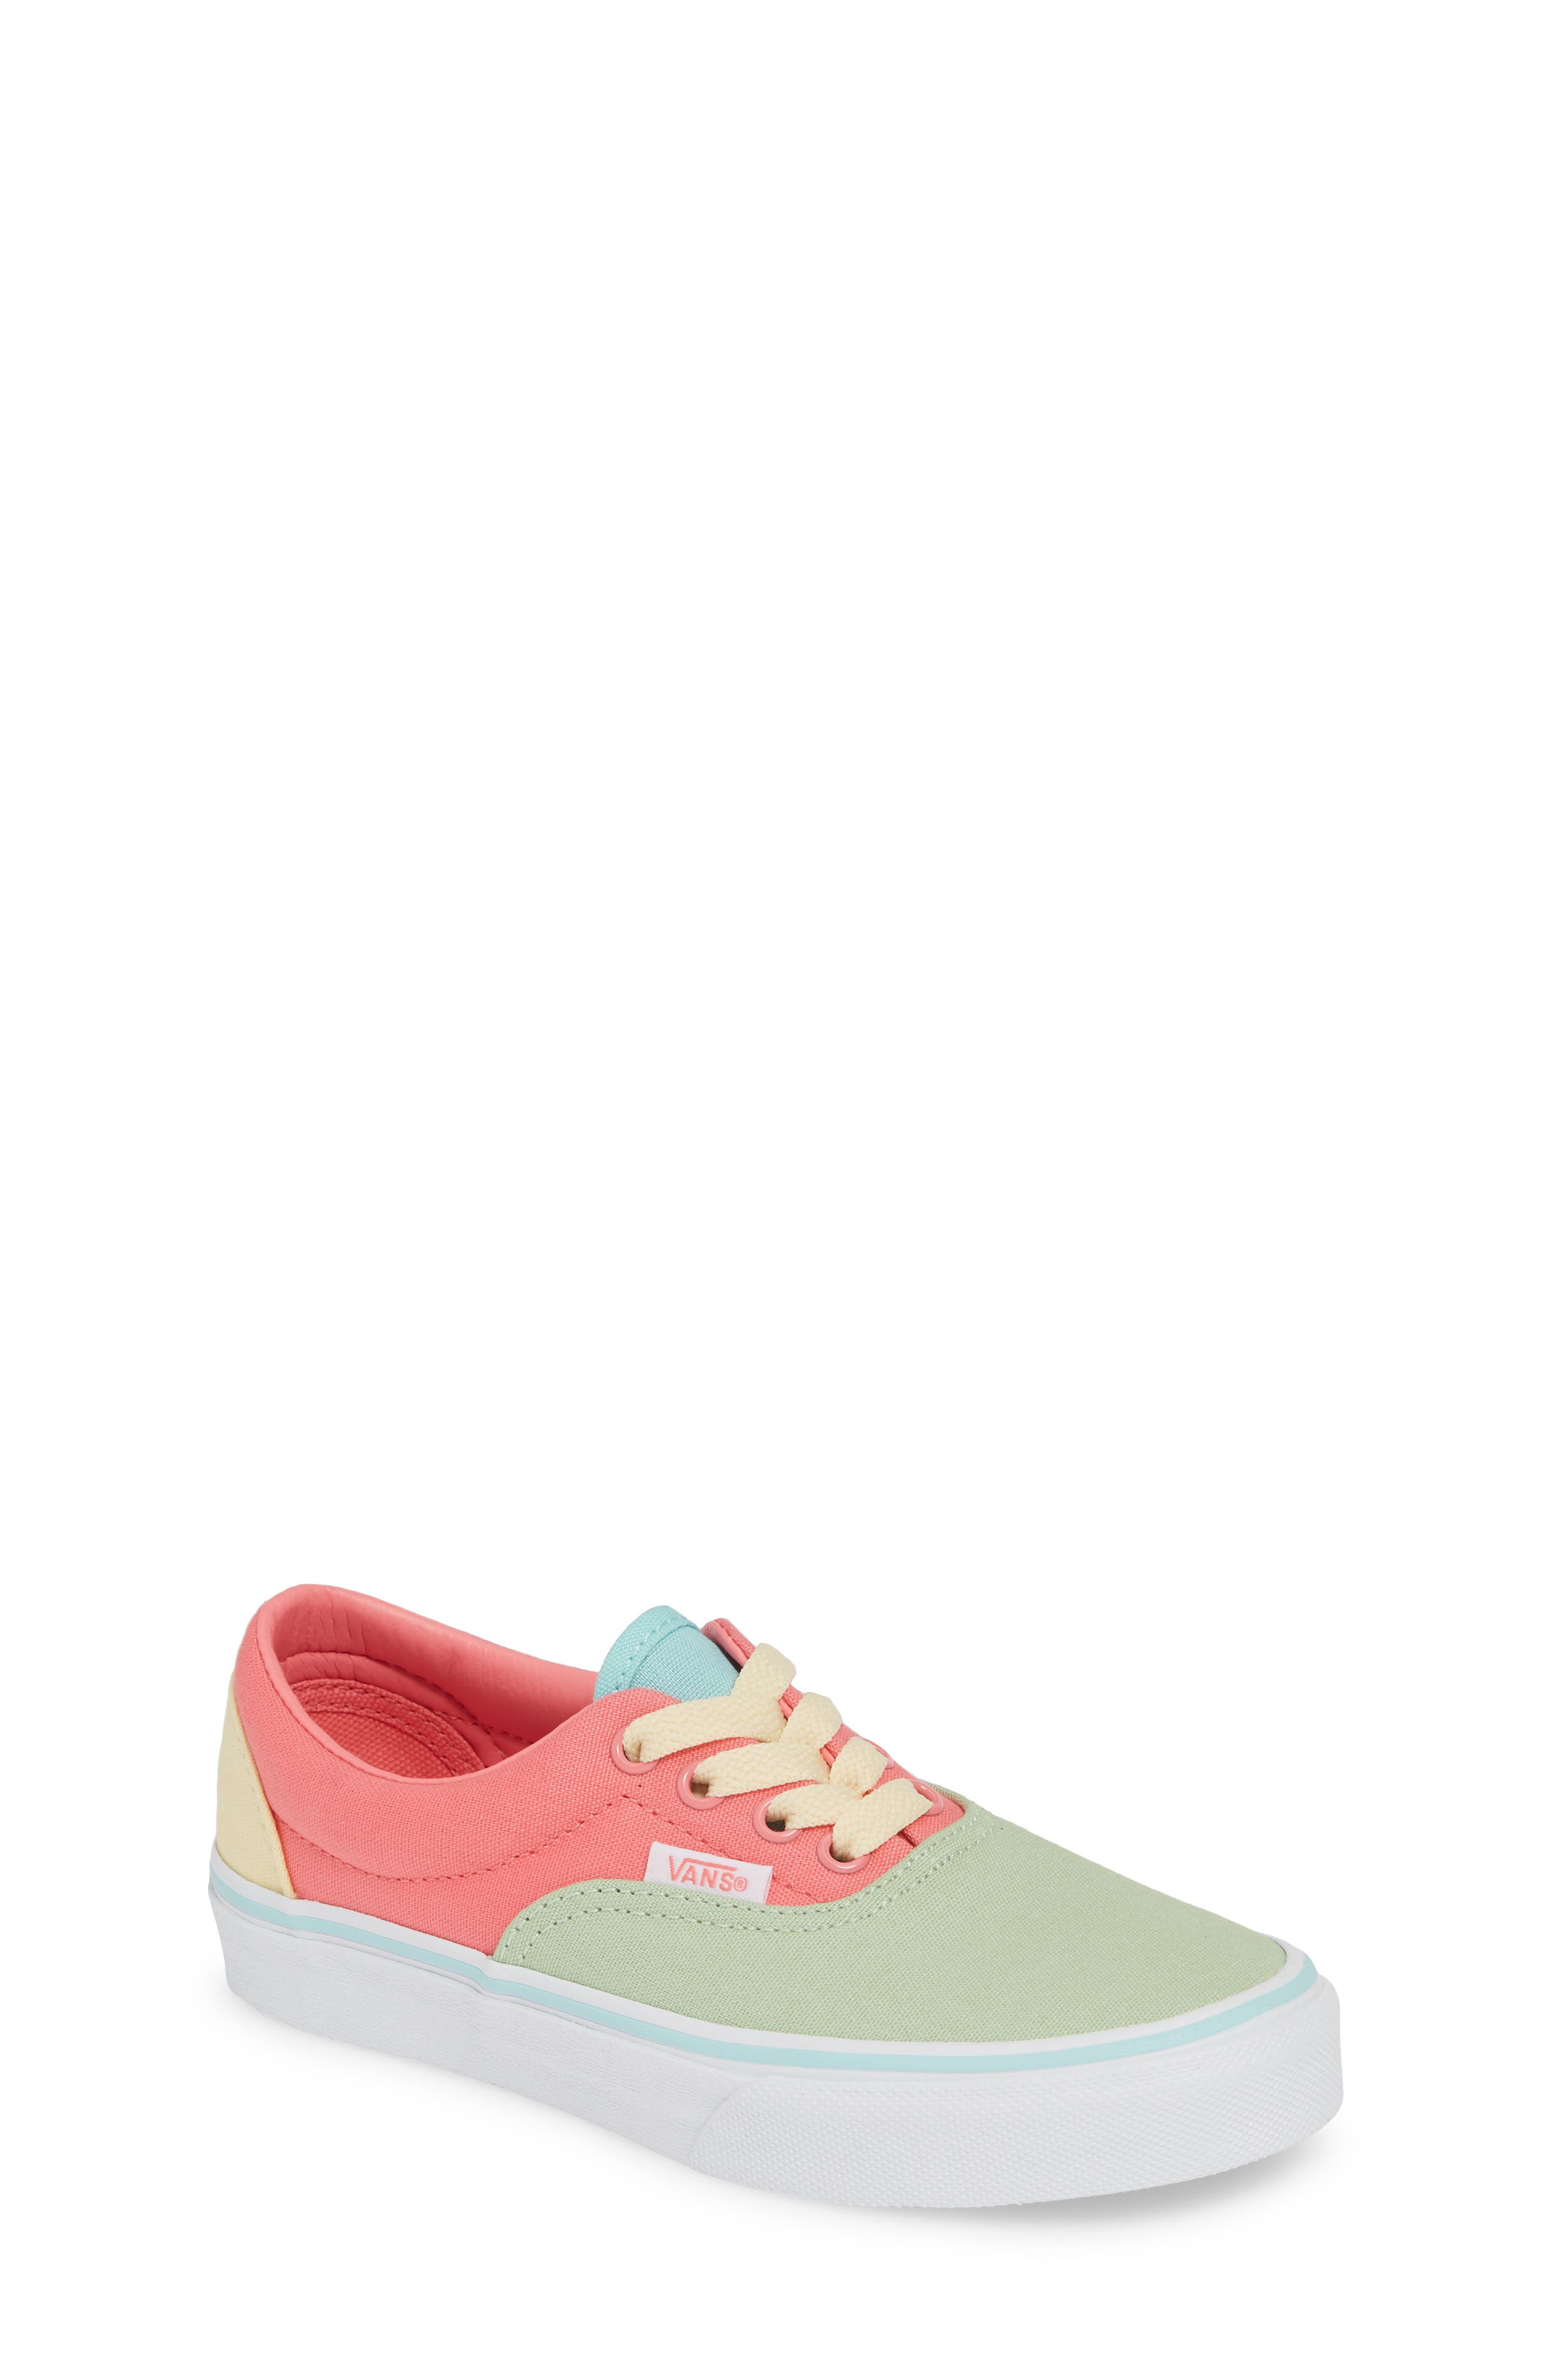 255687383e Vans - Girls Sneakers   Athletic Shoes - Kids  Shoes and Boots to ...